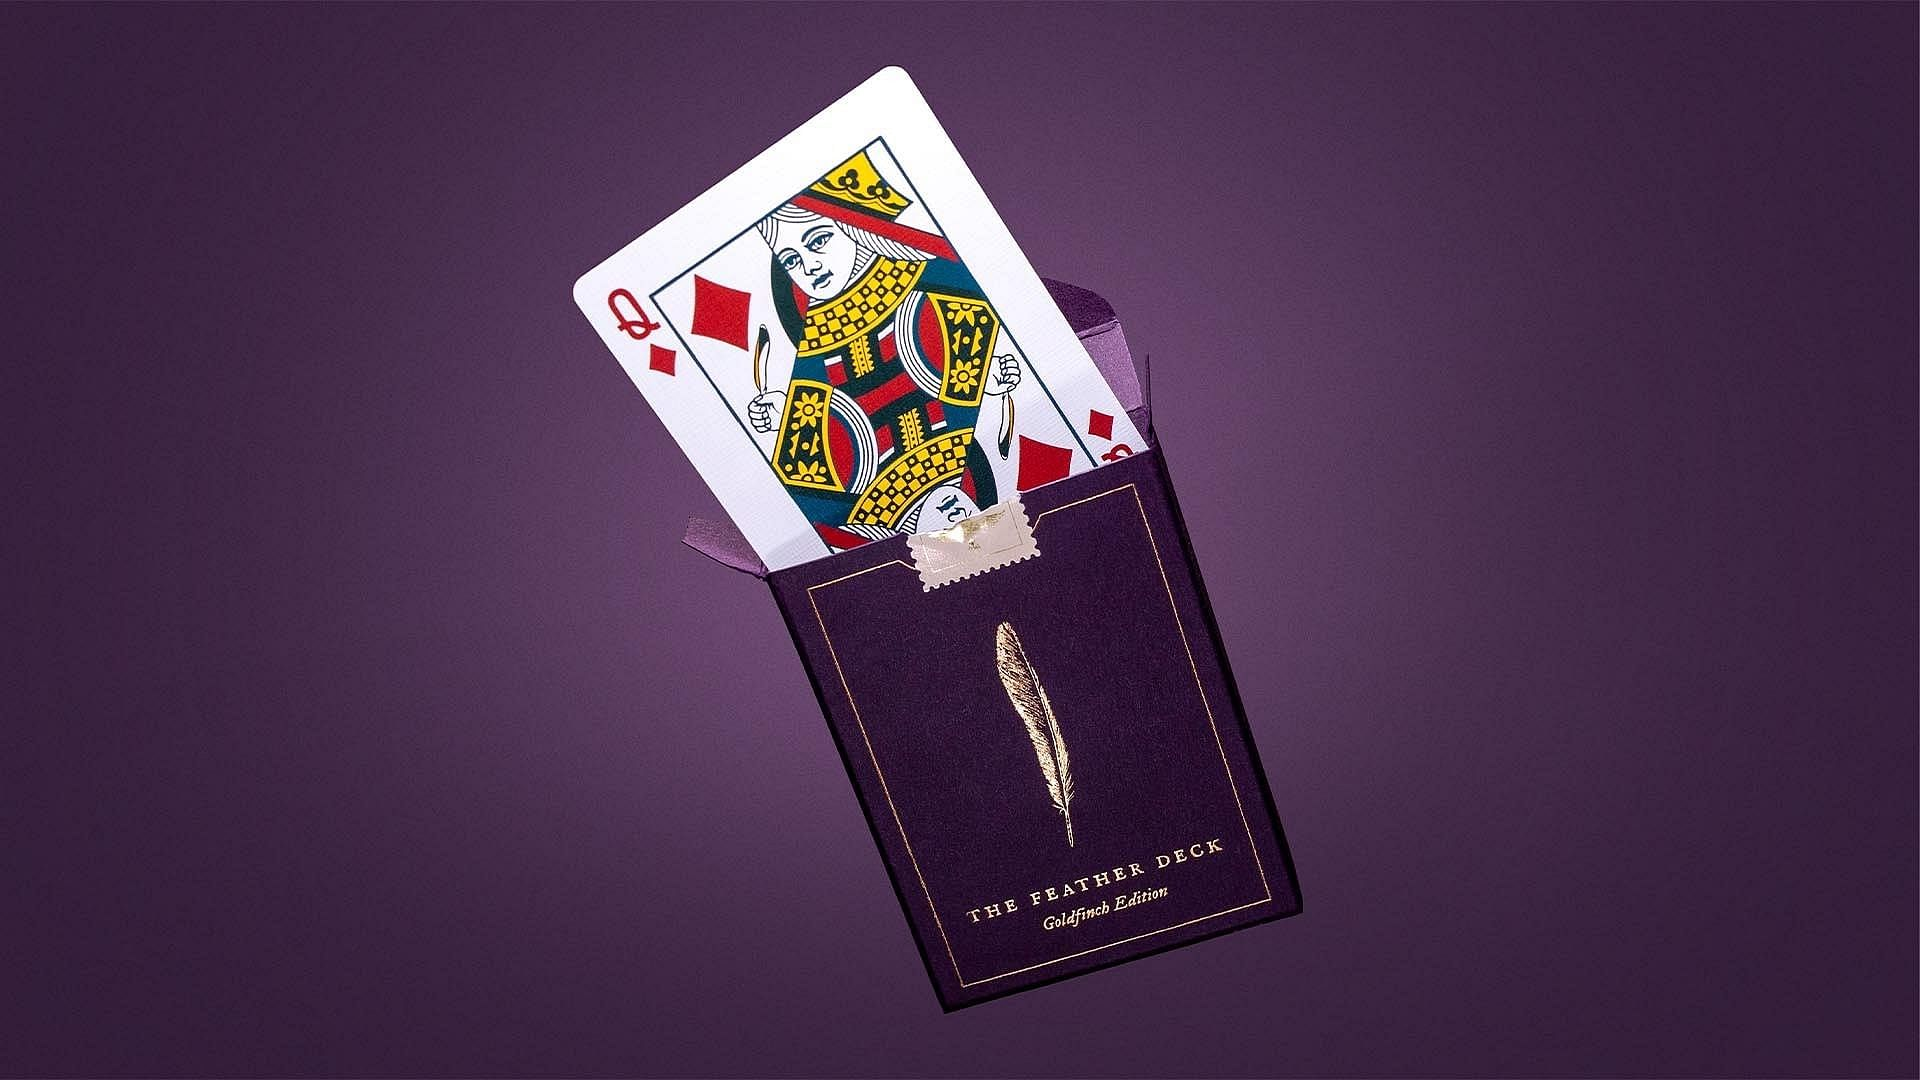 Feather Deck Pplaying Cards